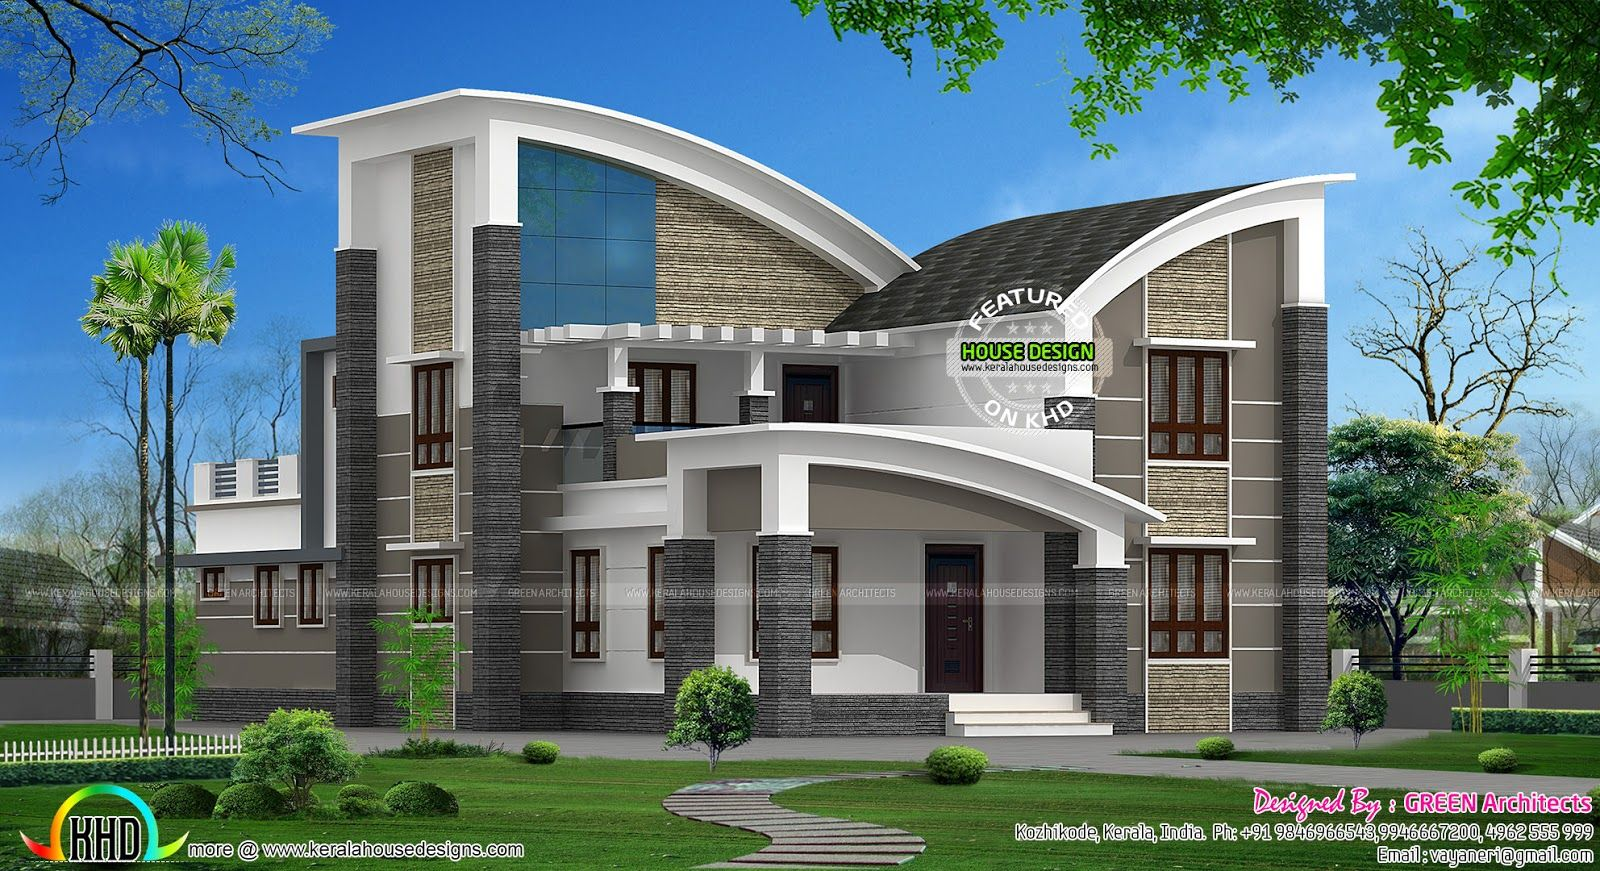 Modern style curved roof villa home inspiration Contemporary style house